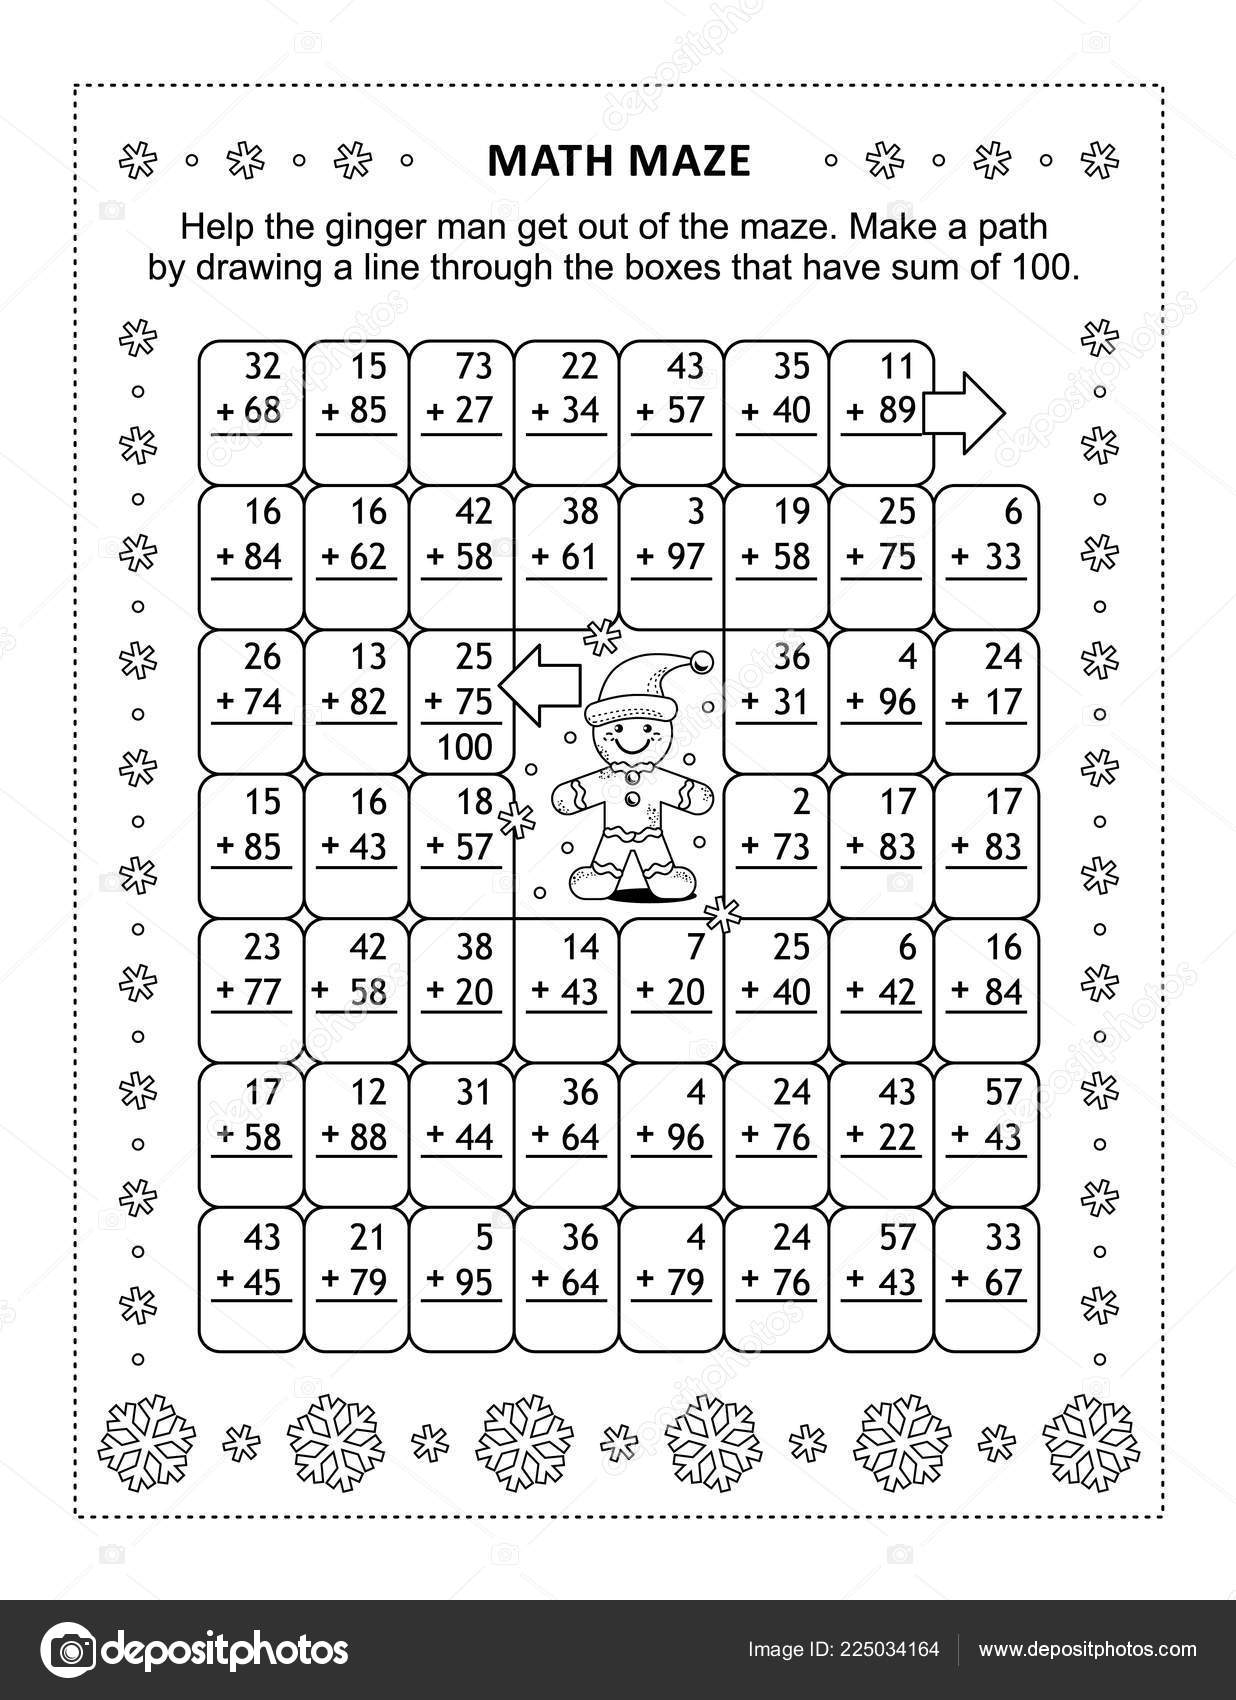 Math Maze Addition Facts Help Ginger Man Get Out Maze